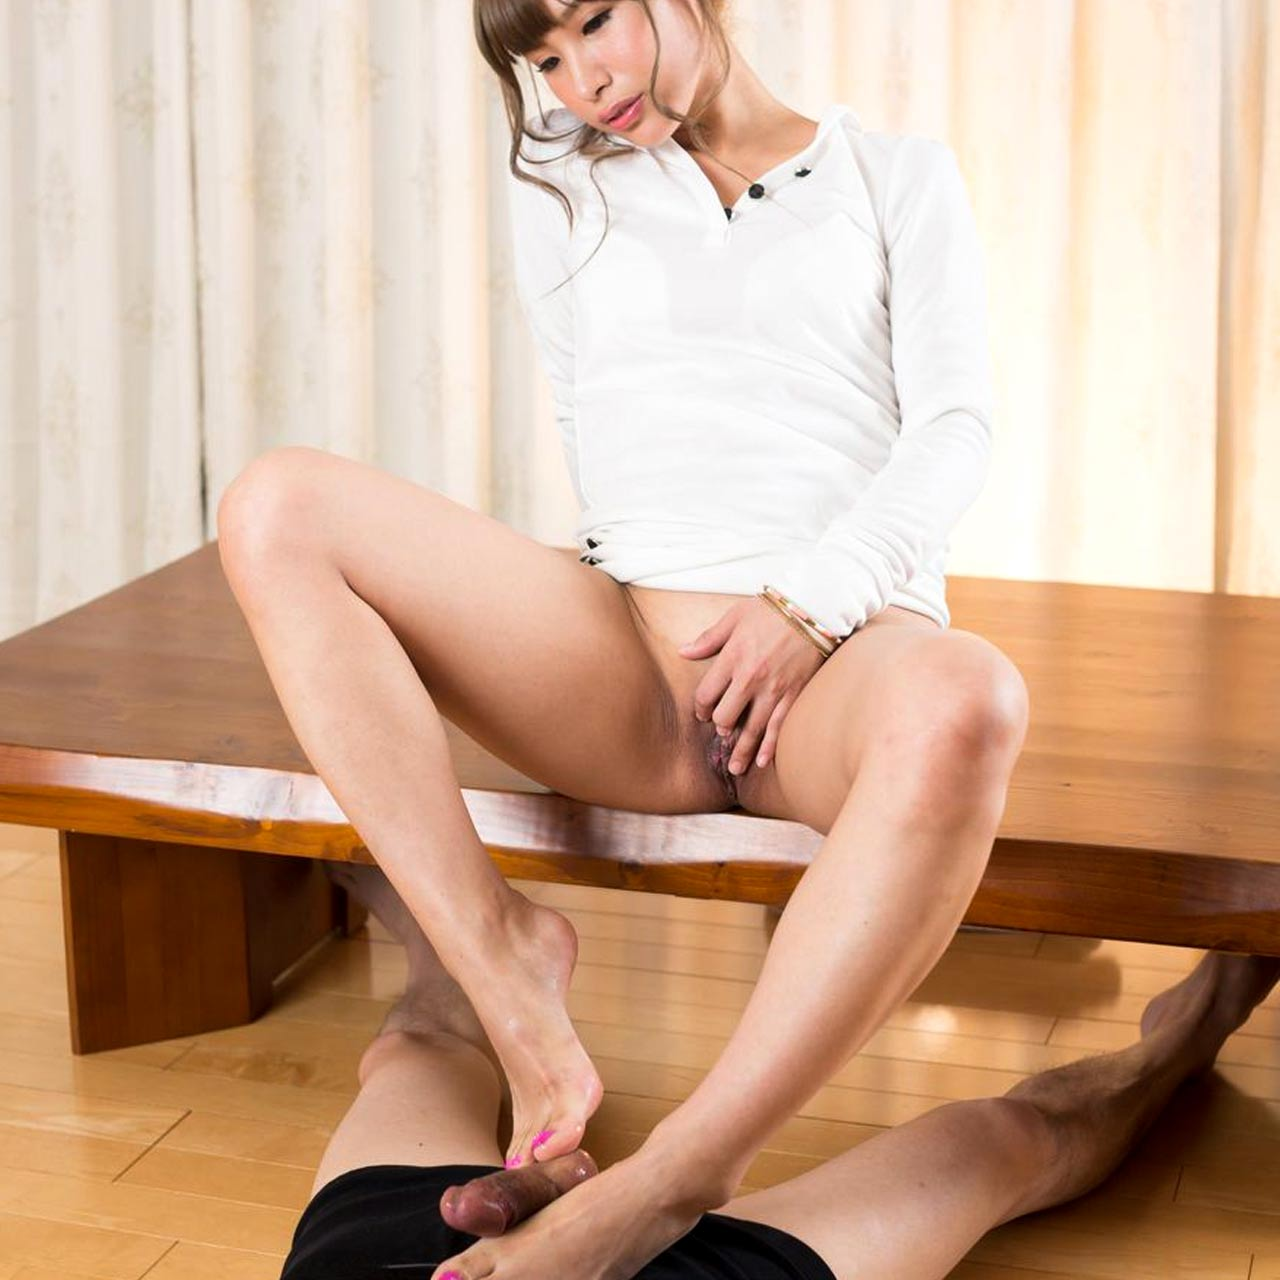 Natsume Hotsuki nude at Legs Japan. Uncensored FootJob, Foot and Leg Fetish videos.